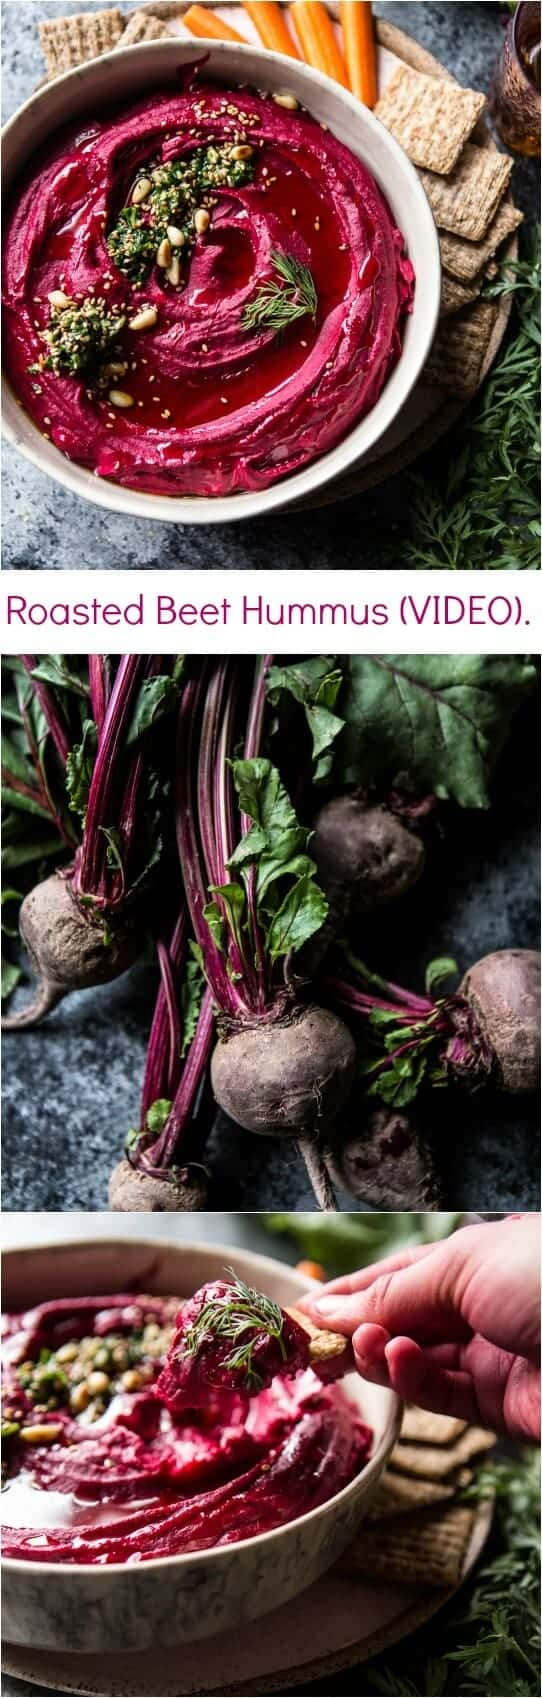 Roasted Beet Hummus (VIDEO) | halfbakedharvest.com @hbharvest